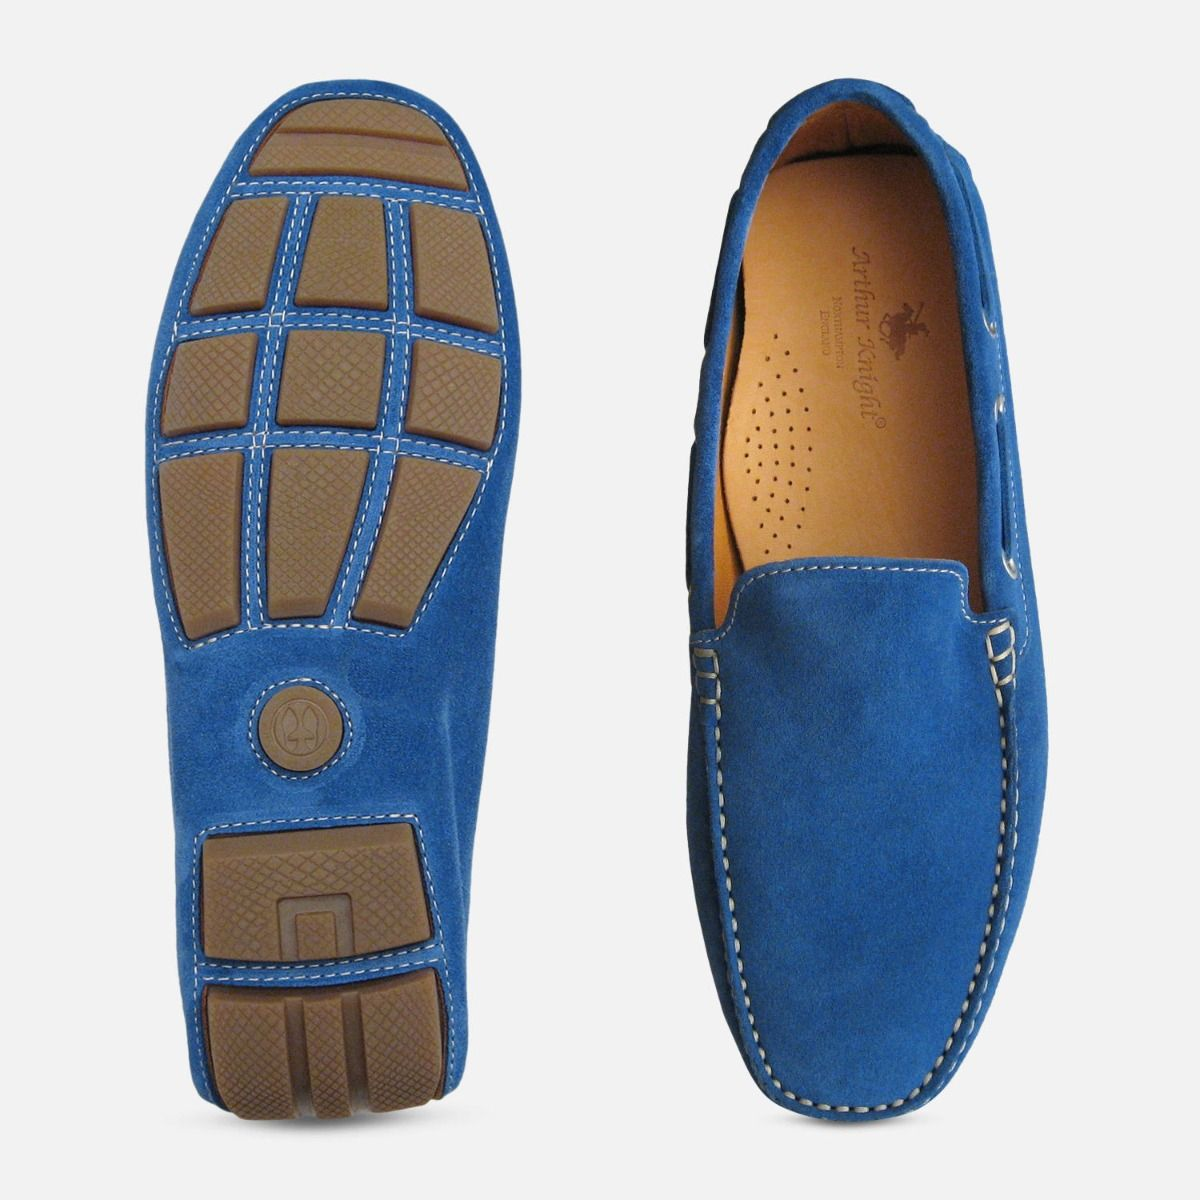 Blue Suede Driving Shoes for Men